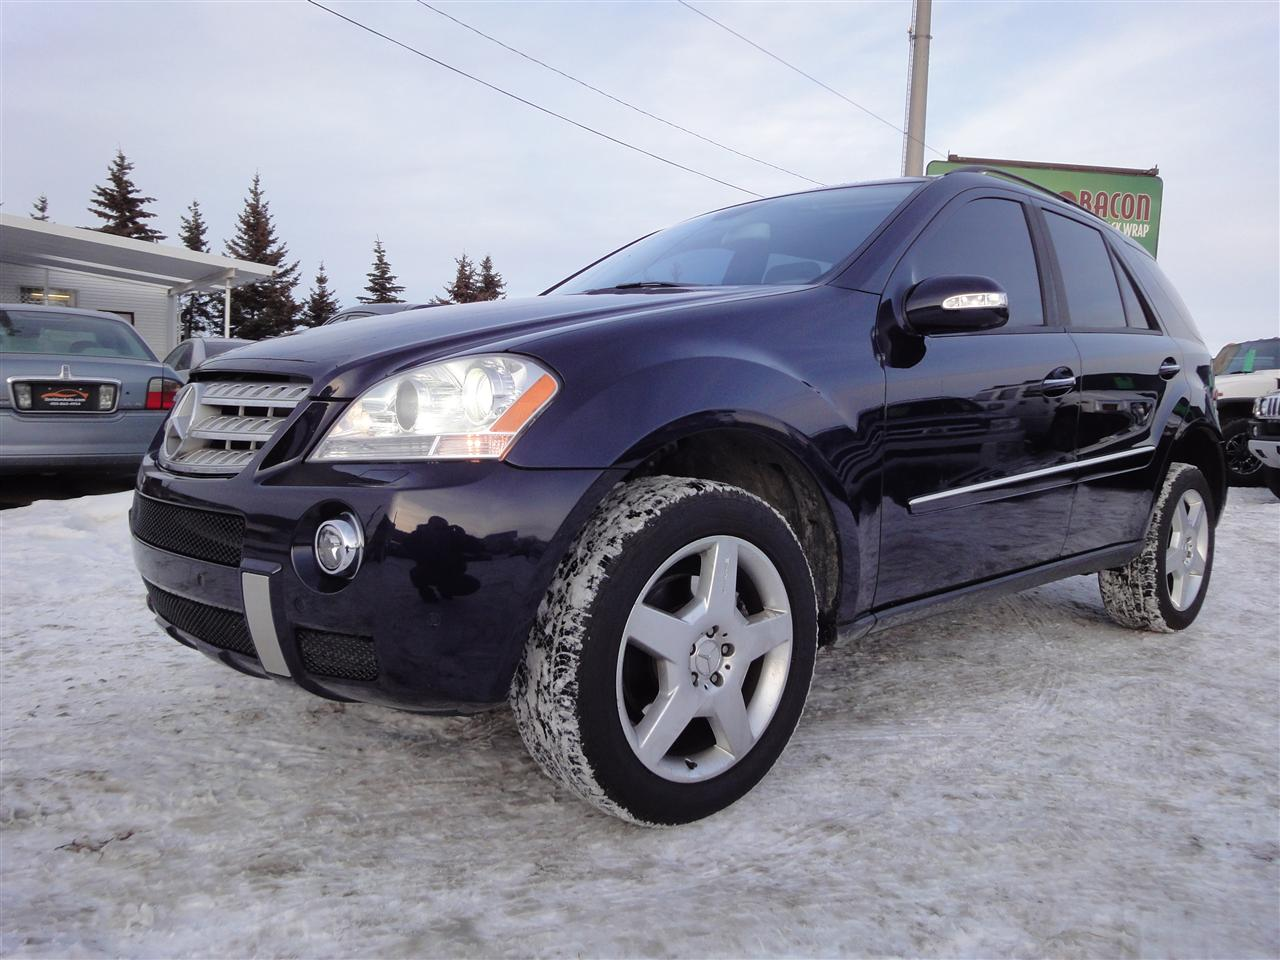 2006 mercedes benz ml500 amg appearance pkg envision auto for 2017 mercedes benz ml500 price